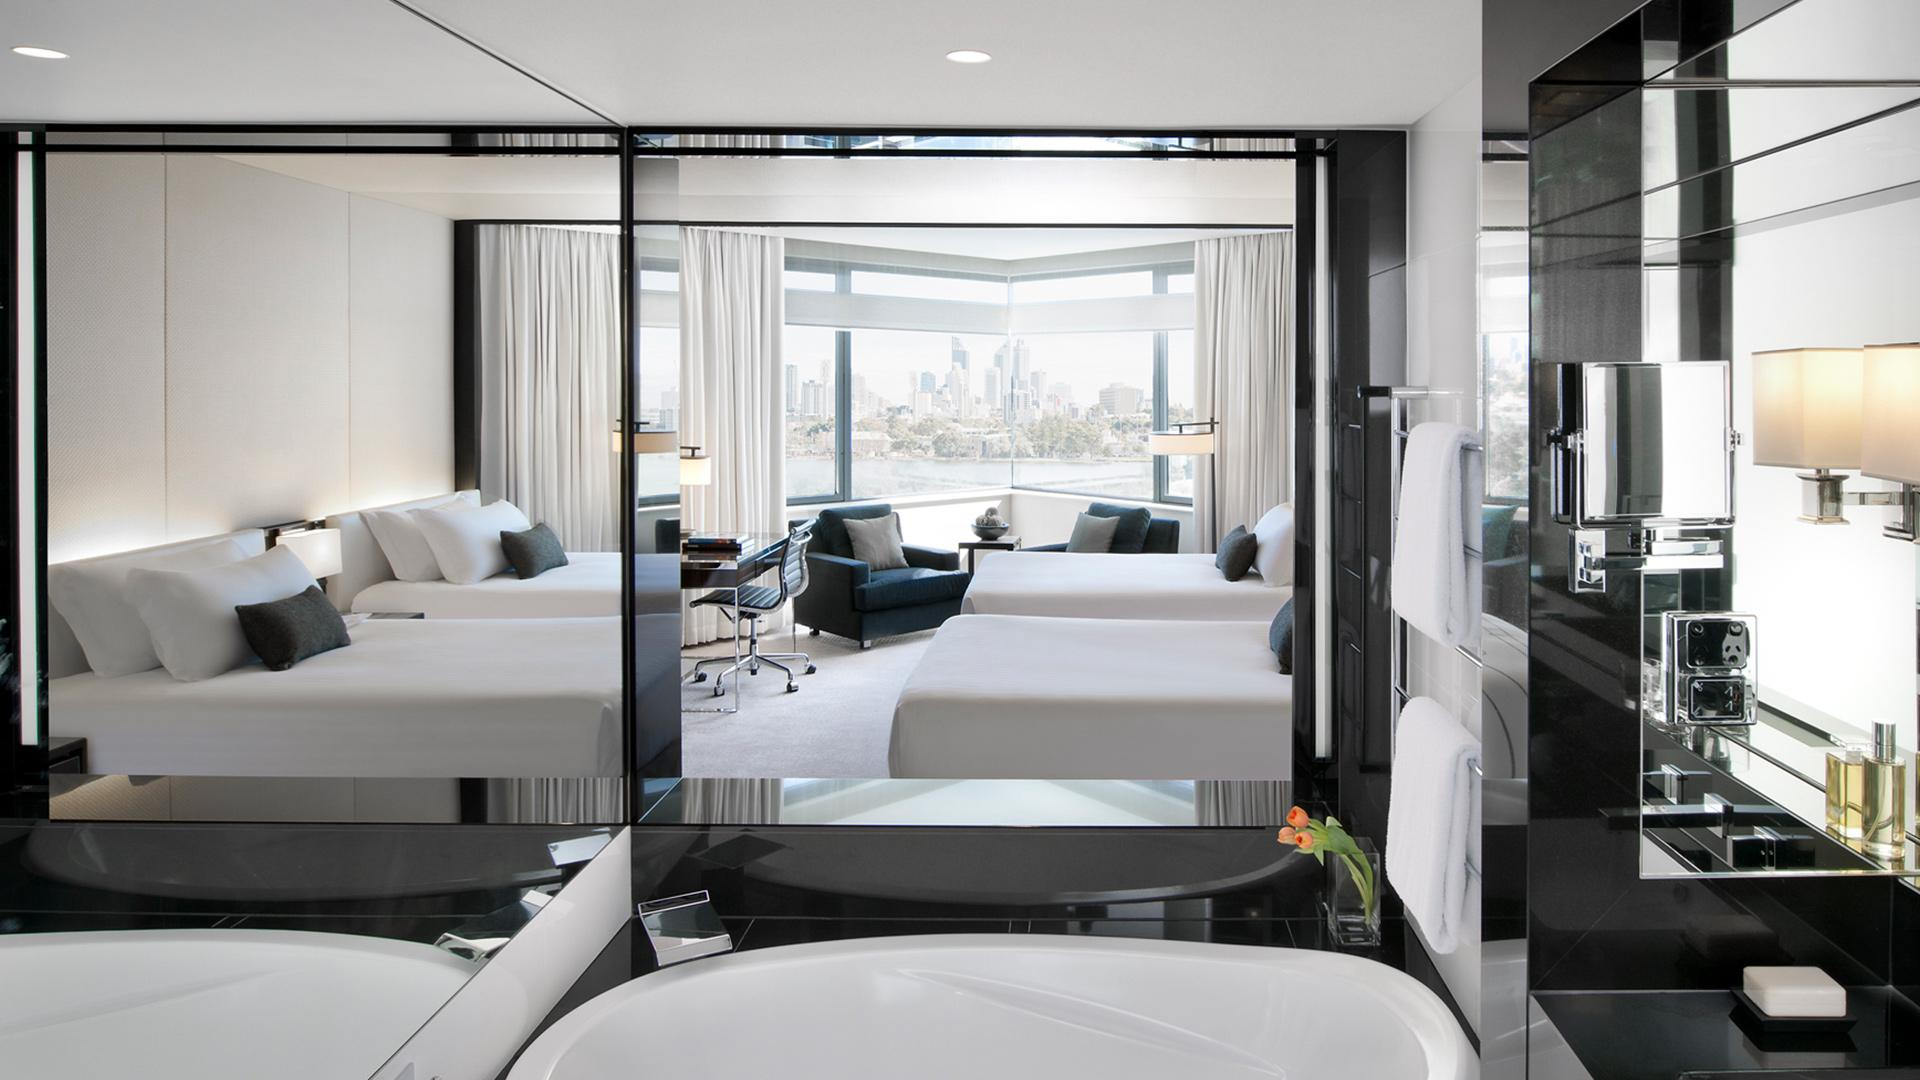 Luxe Twin Room image 1 at Crown Metropol Perth by Town of Victoria Park, Western Australia, Australia